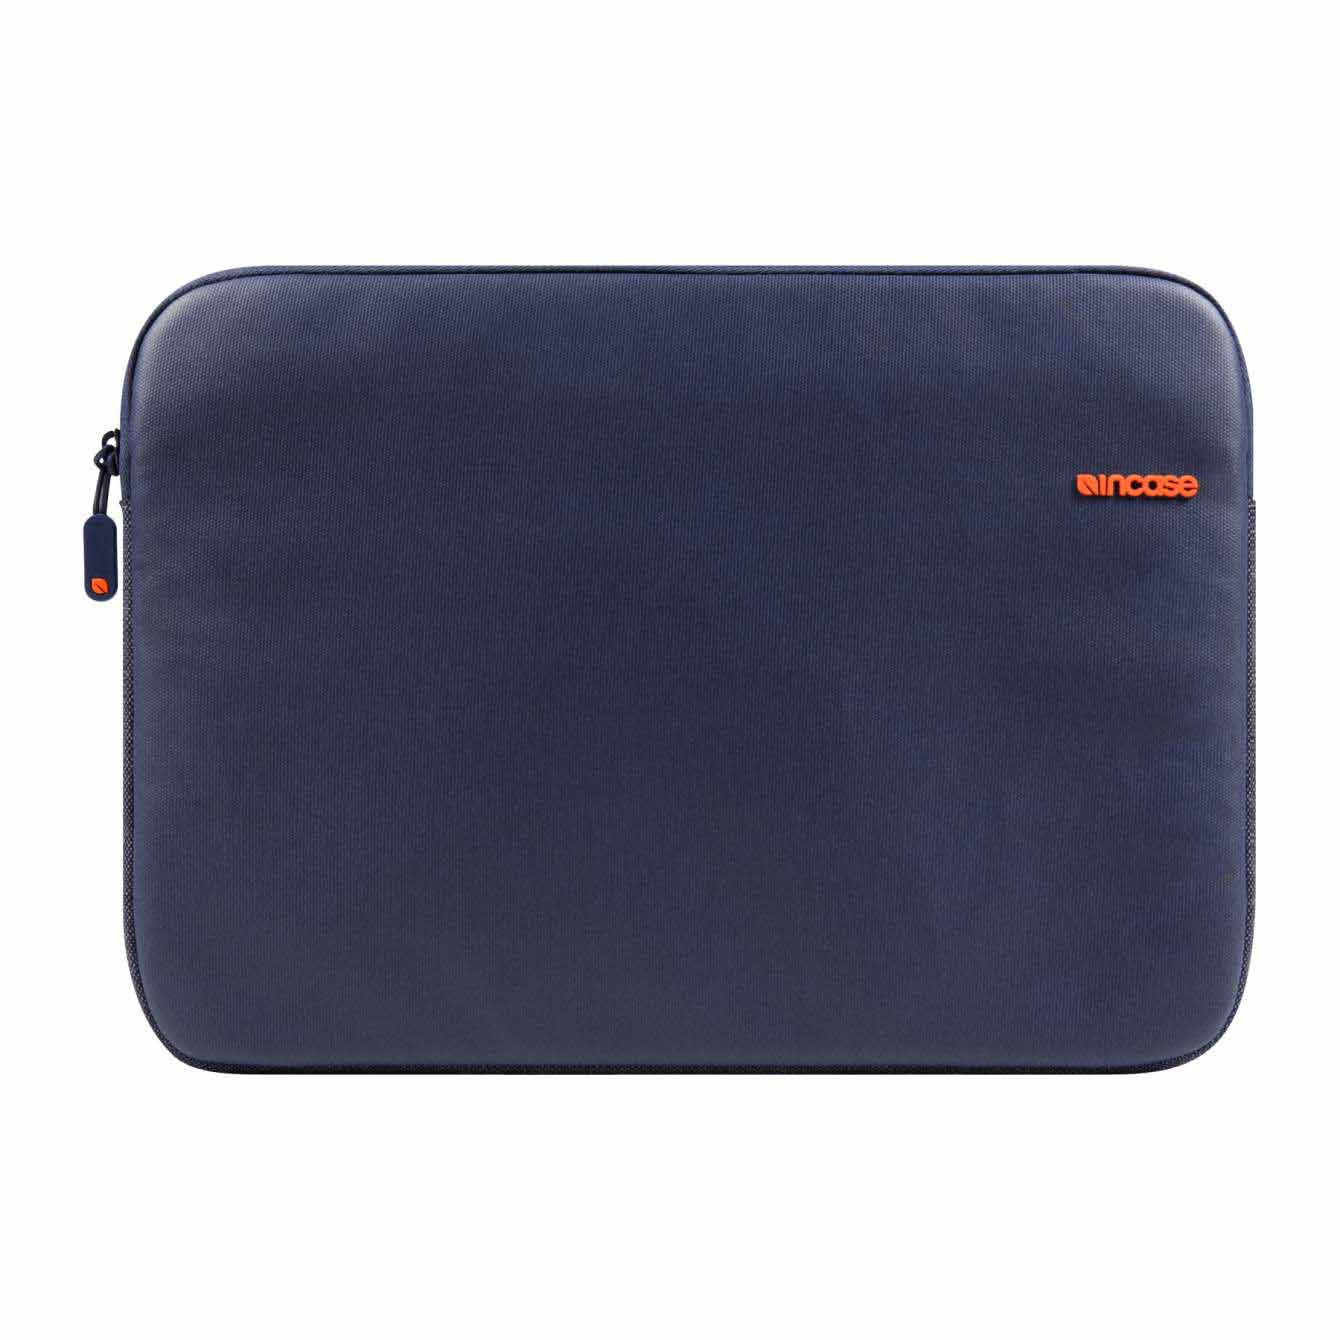 Incase City Sleeve Complete protection for your  MacBook air 11 สีน้ำเงิน